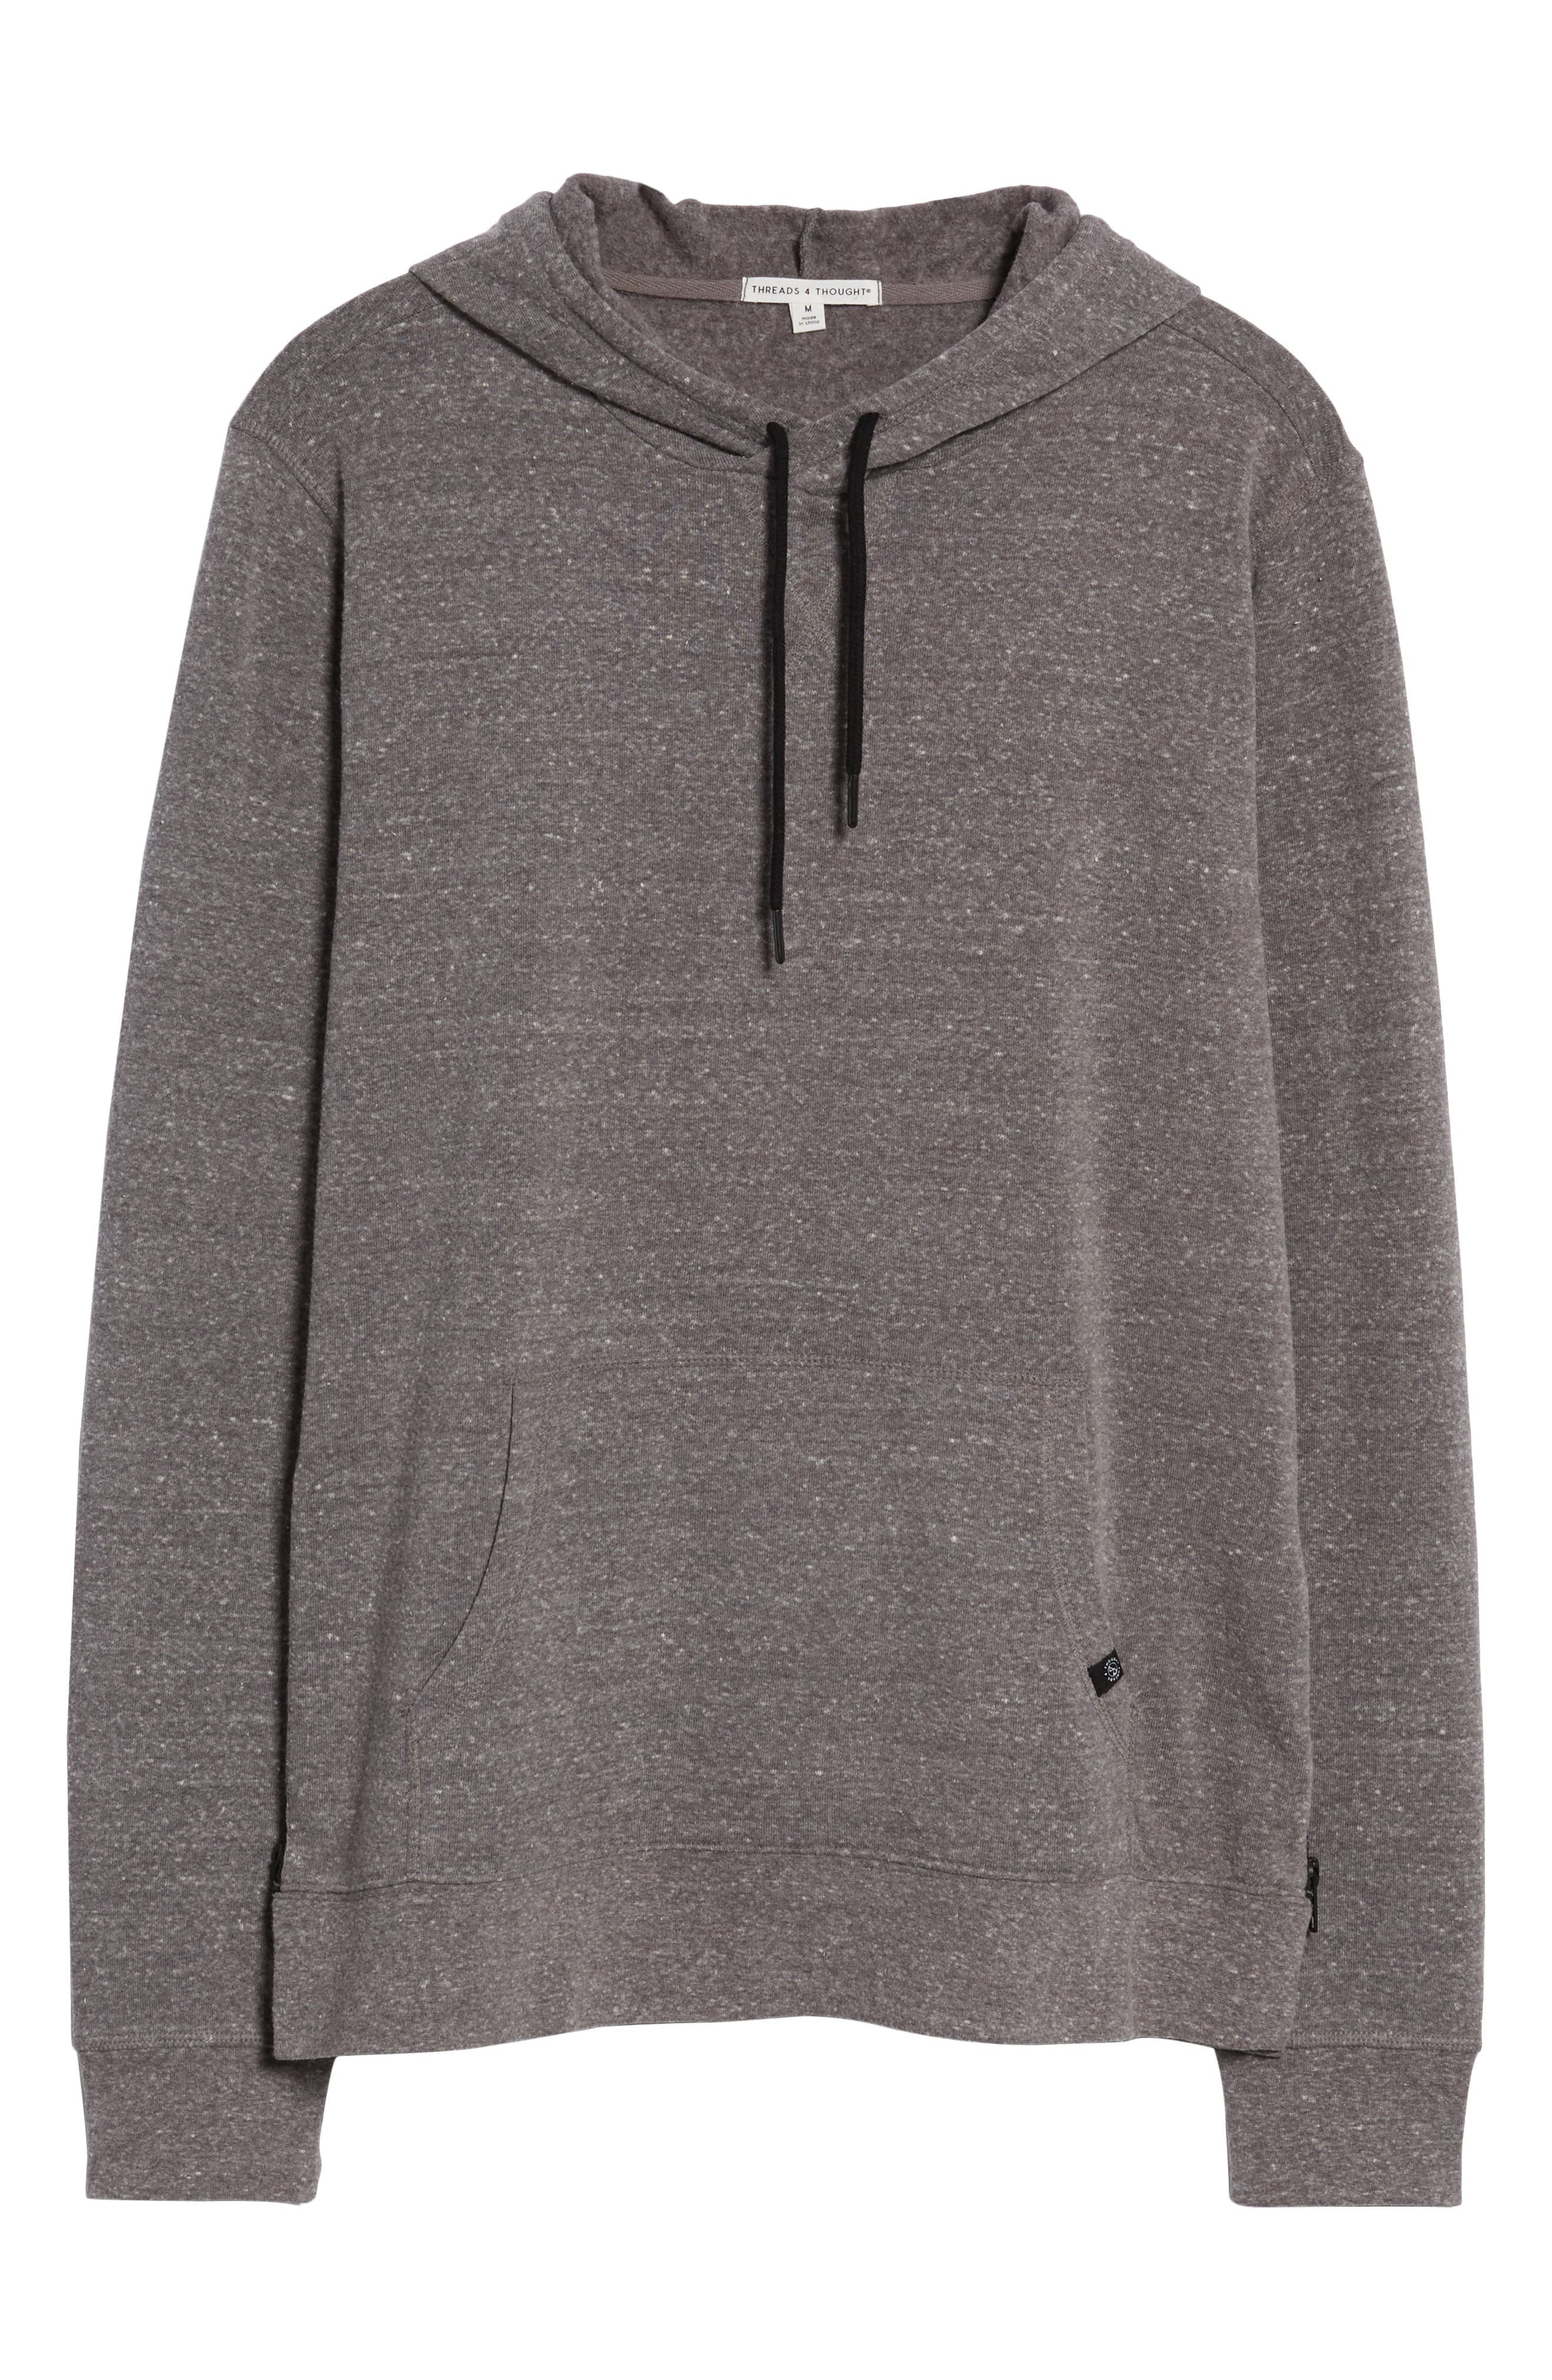 THREADS FOR THOUGHT,                             Barkeley Side Zip Hoodie Sweatshirt,                             Alternate thumbnail 6, color,                             020